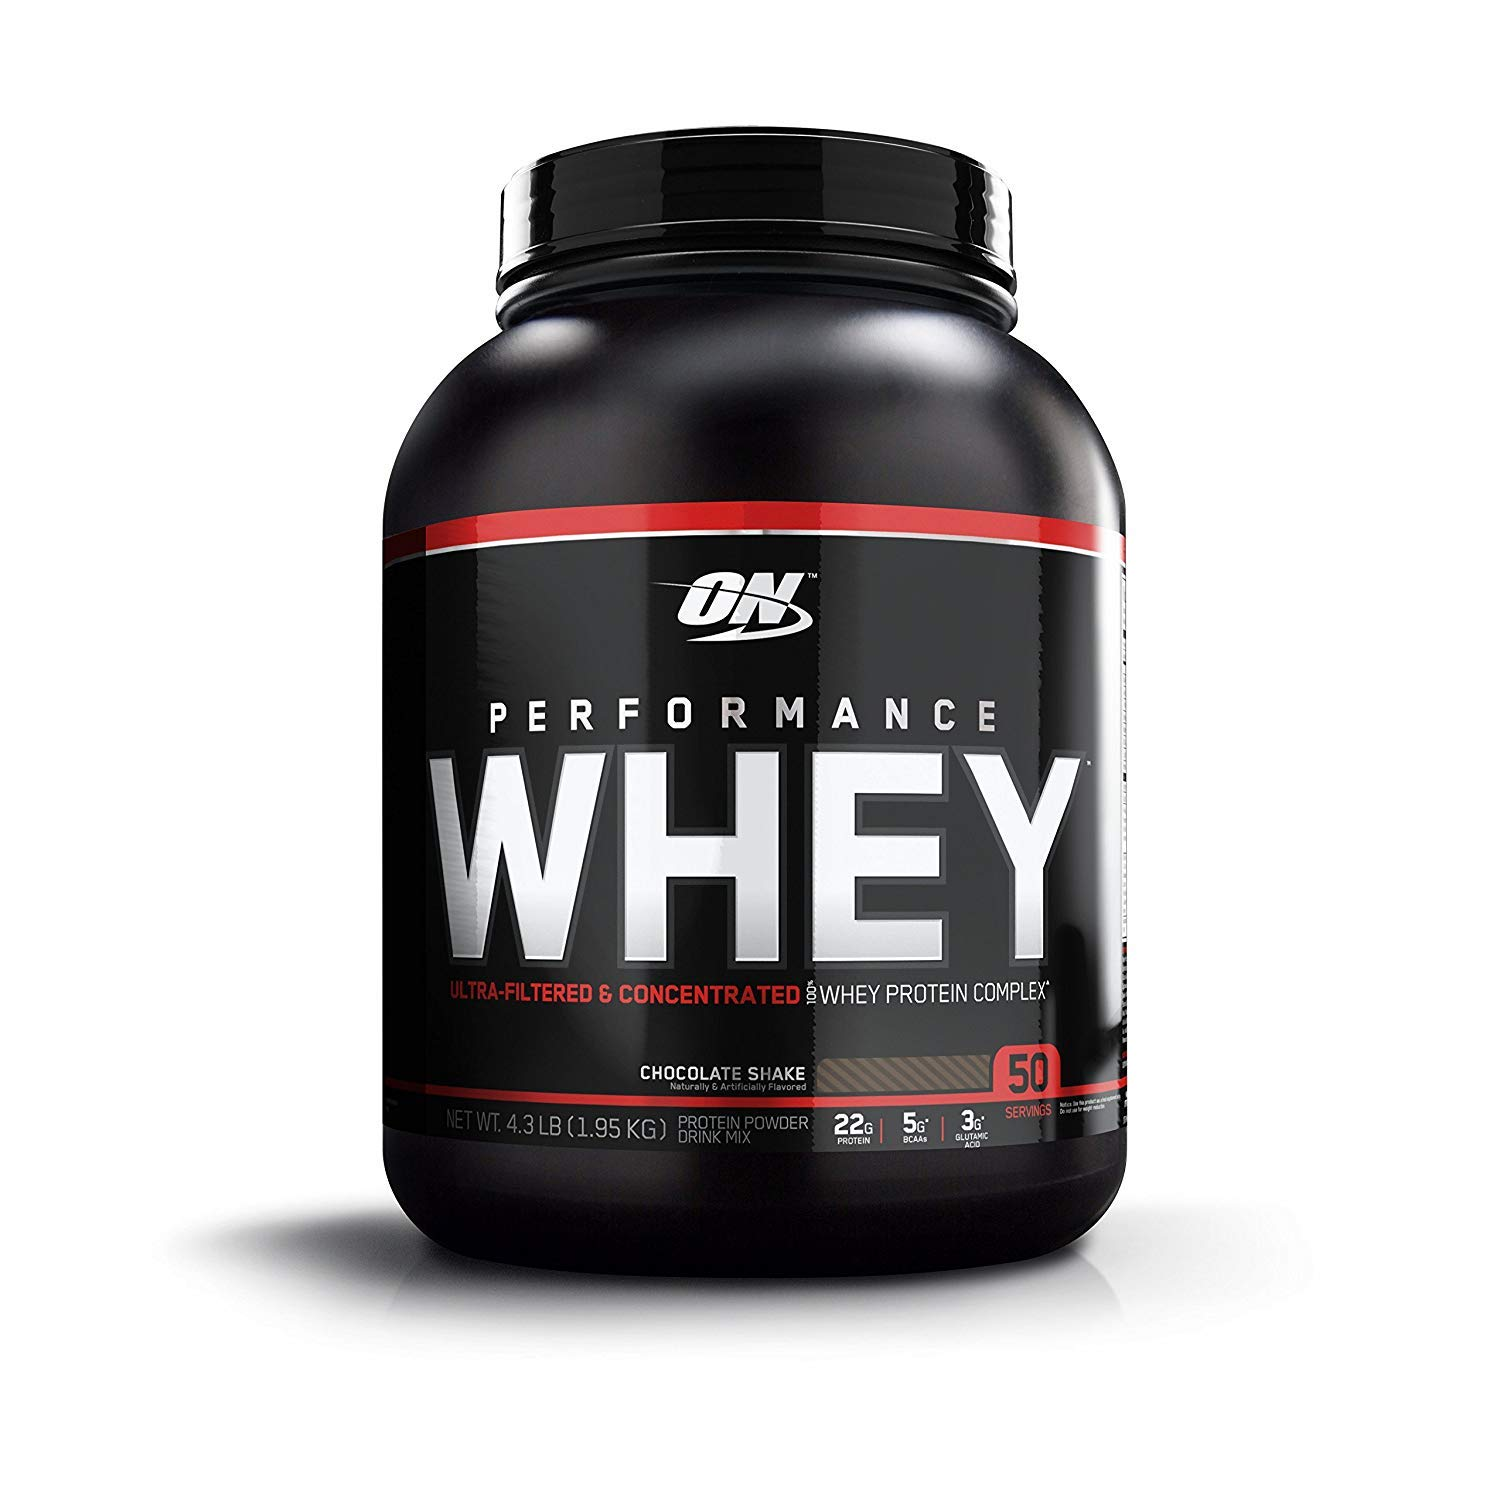 OPTIMUM NUTRITION Performance Whey Protein Powder, Whey Protein Concentrate, Whey Protein Isolate, Hydrolyzed Whey Protein Isolate, Flavor: Chocolate Shake, 50 Servings by Optimum Nutrition